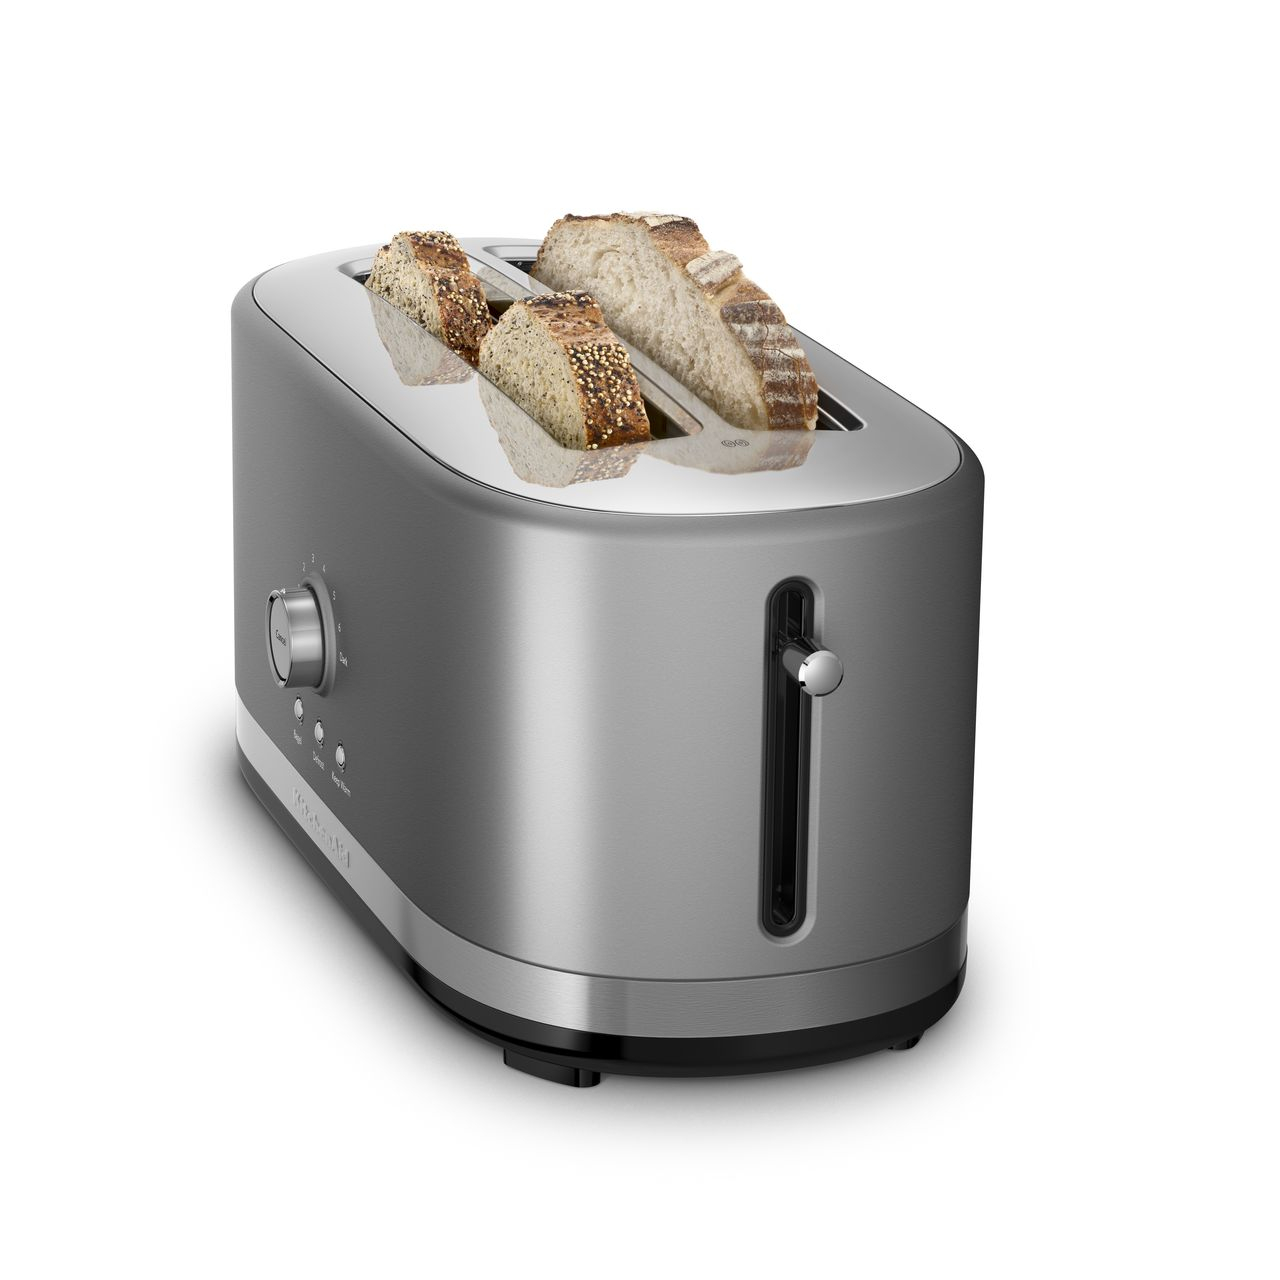 KitchenAid Contour Silver 4-Slice Long Slot Toaster with High Lift Lever